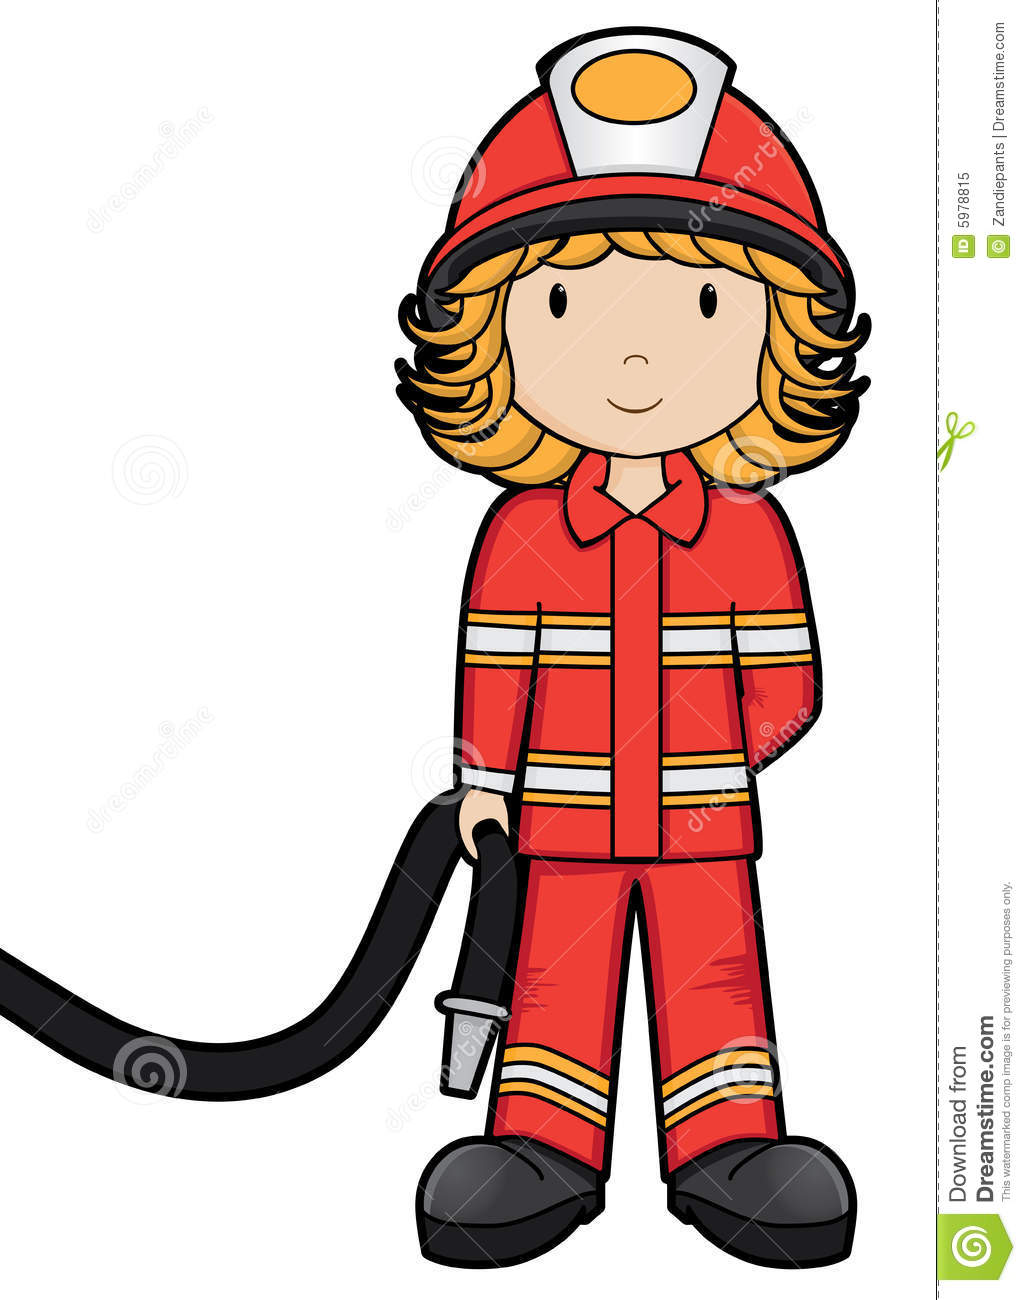 Fire Girl - Vector Royalty Free Stock Photo - Image: 5978815